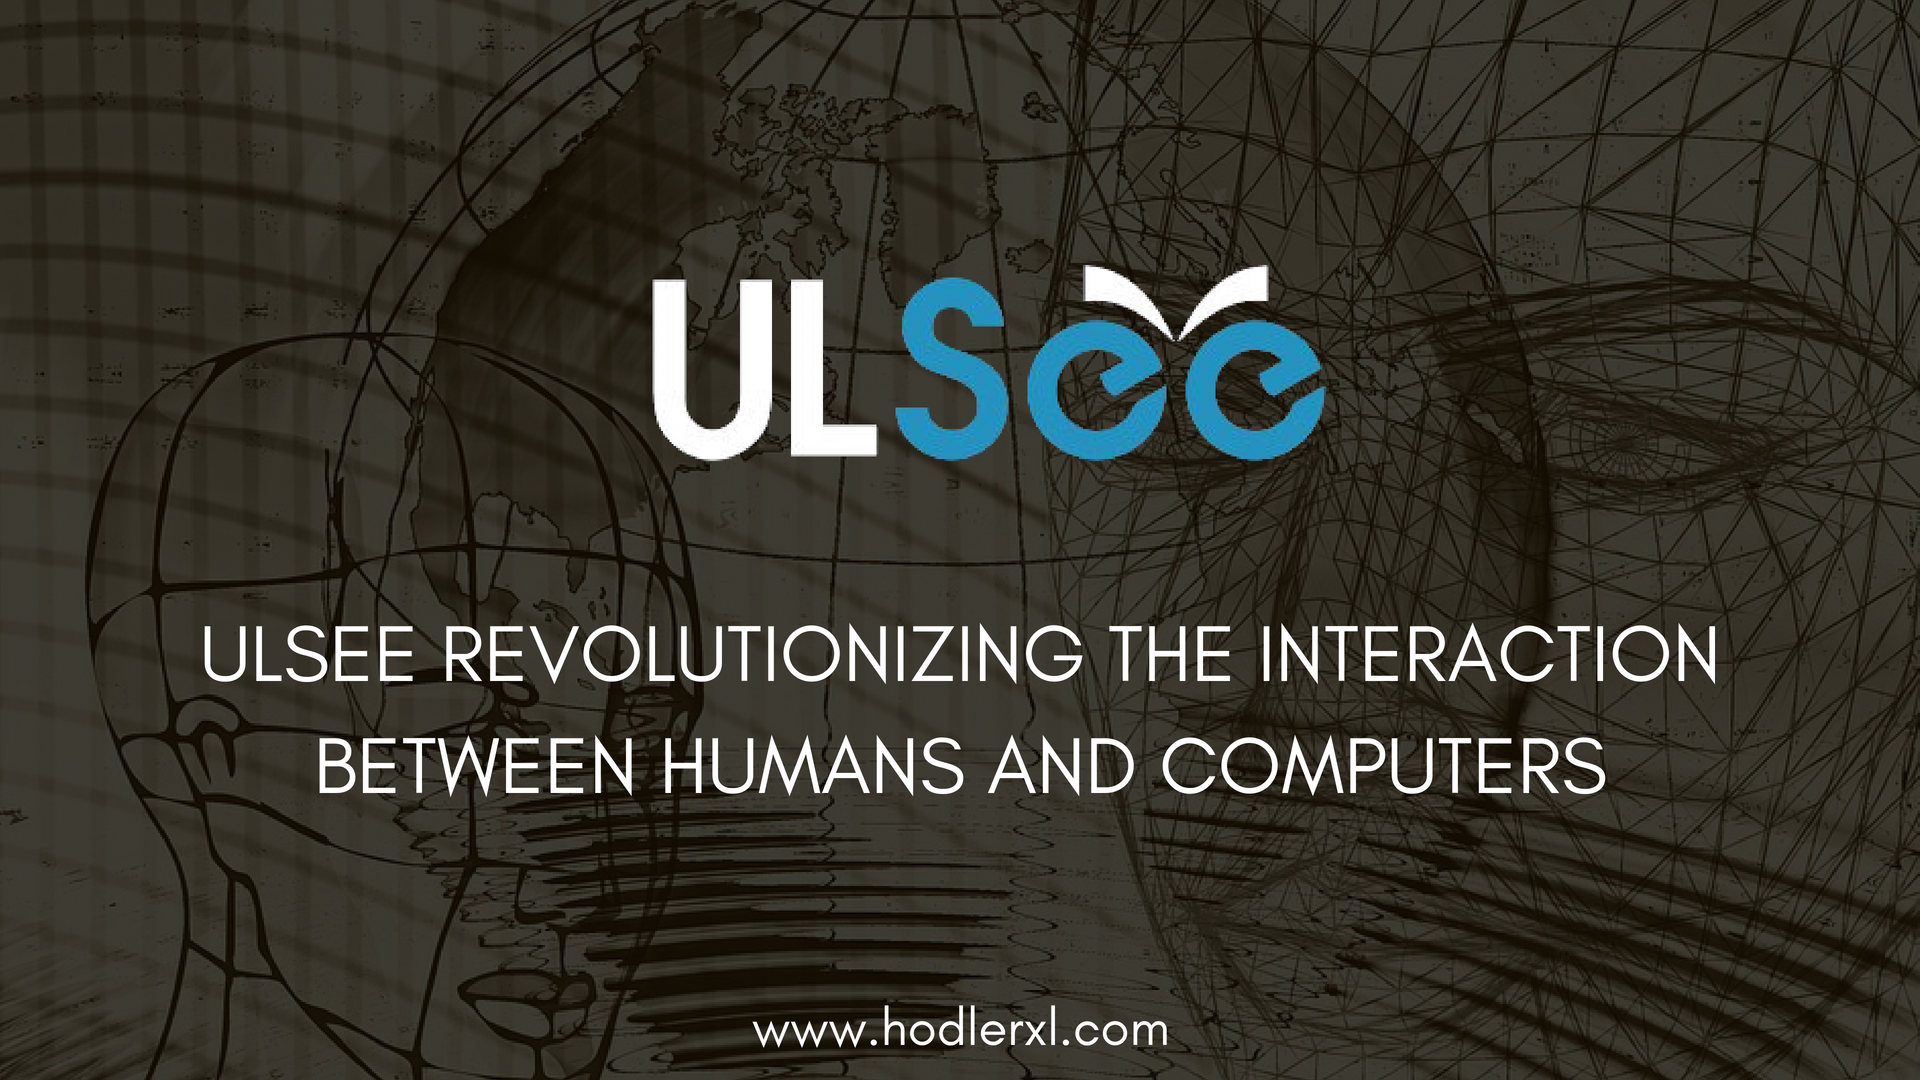 ULSee Revolutionizing The Interaction Between Humans And Computers